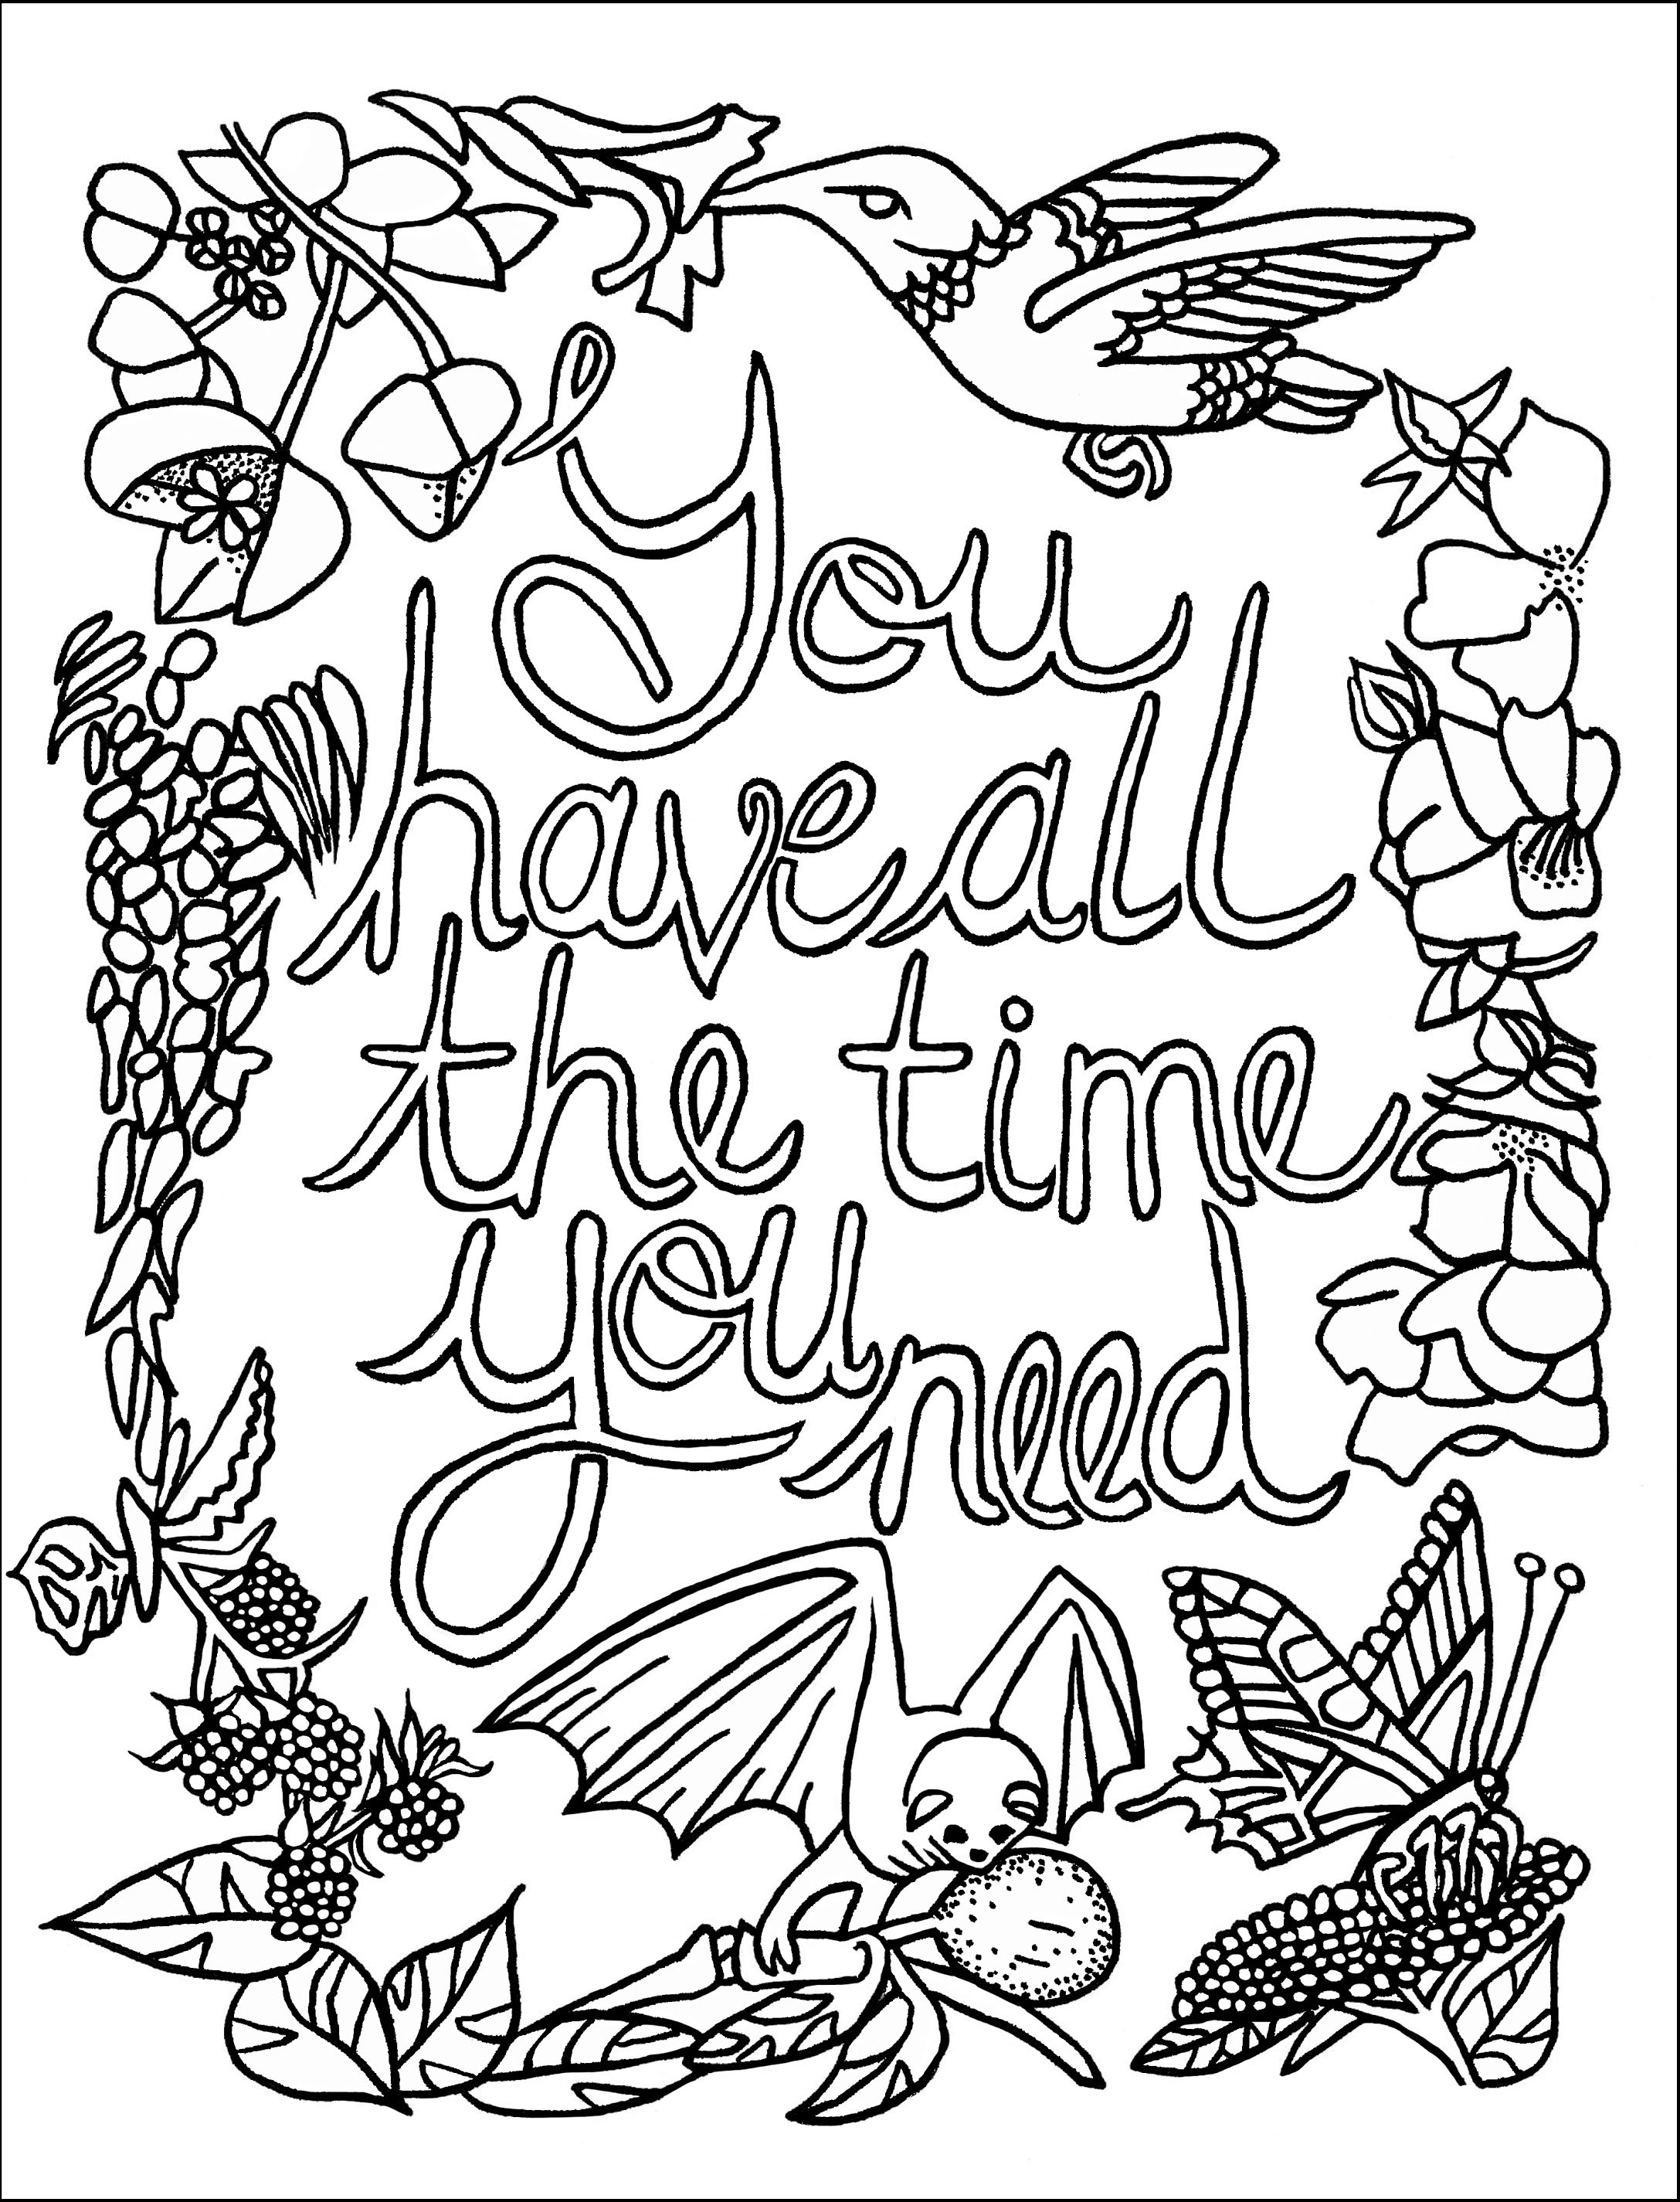 A Sample Colouring Page from The Joyful Living Colouring Book |